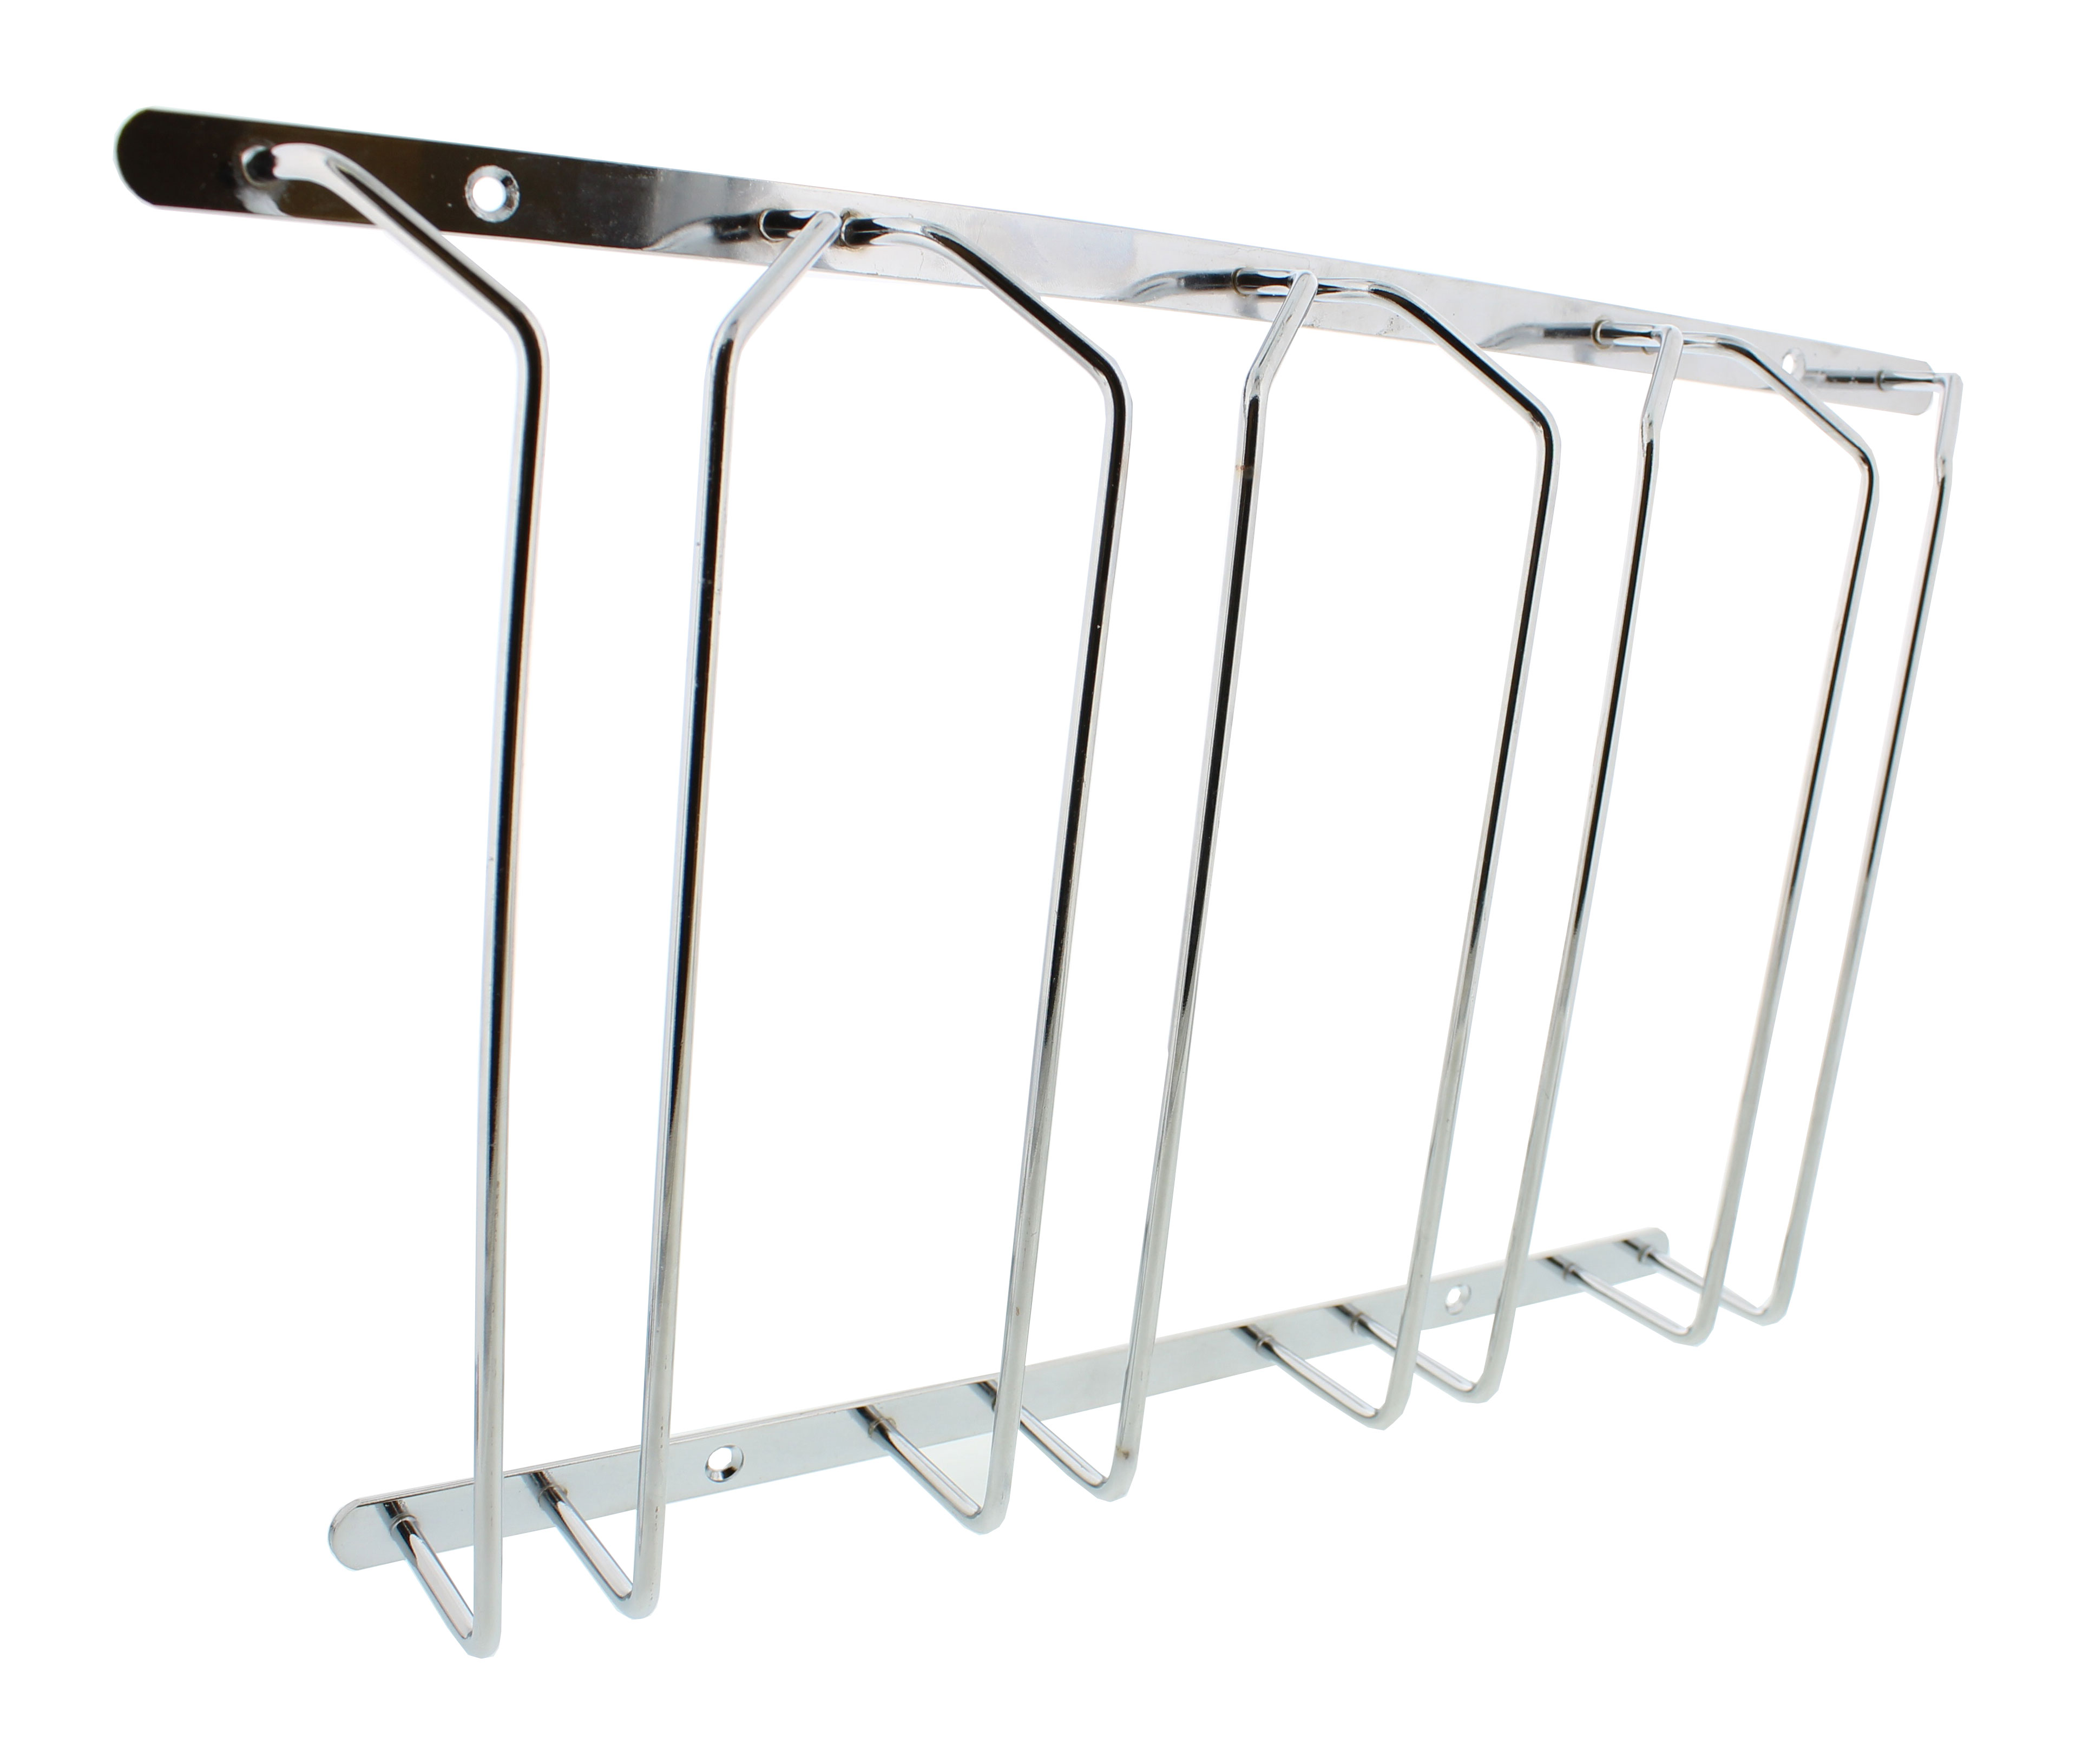 Countertop Wine Glass Rack Wine Glass Rack Under Cabinet Stemware Holder Holds 6 To